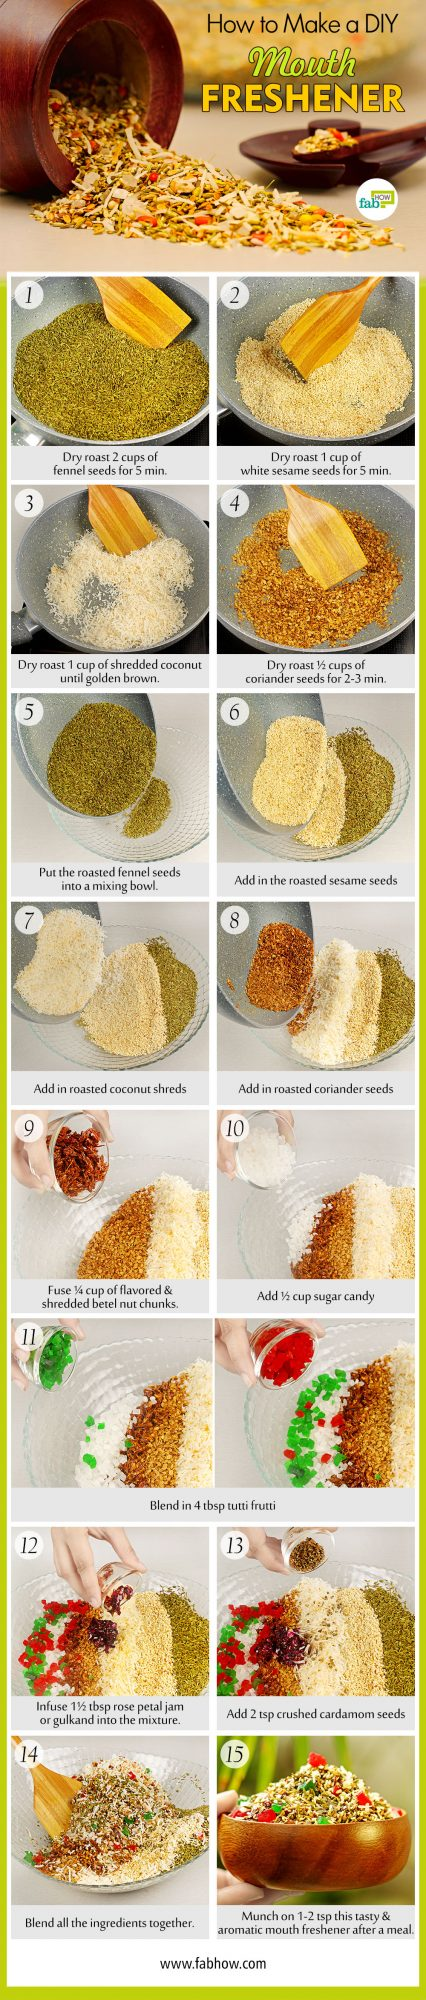 how to make mouth freshener